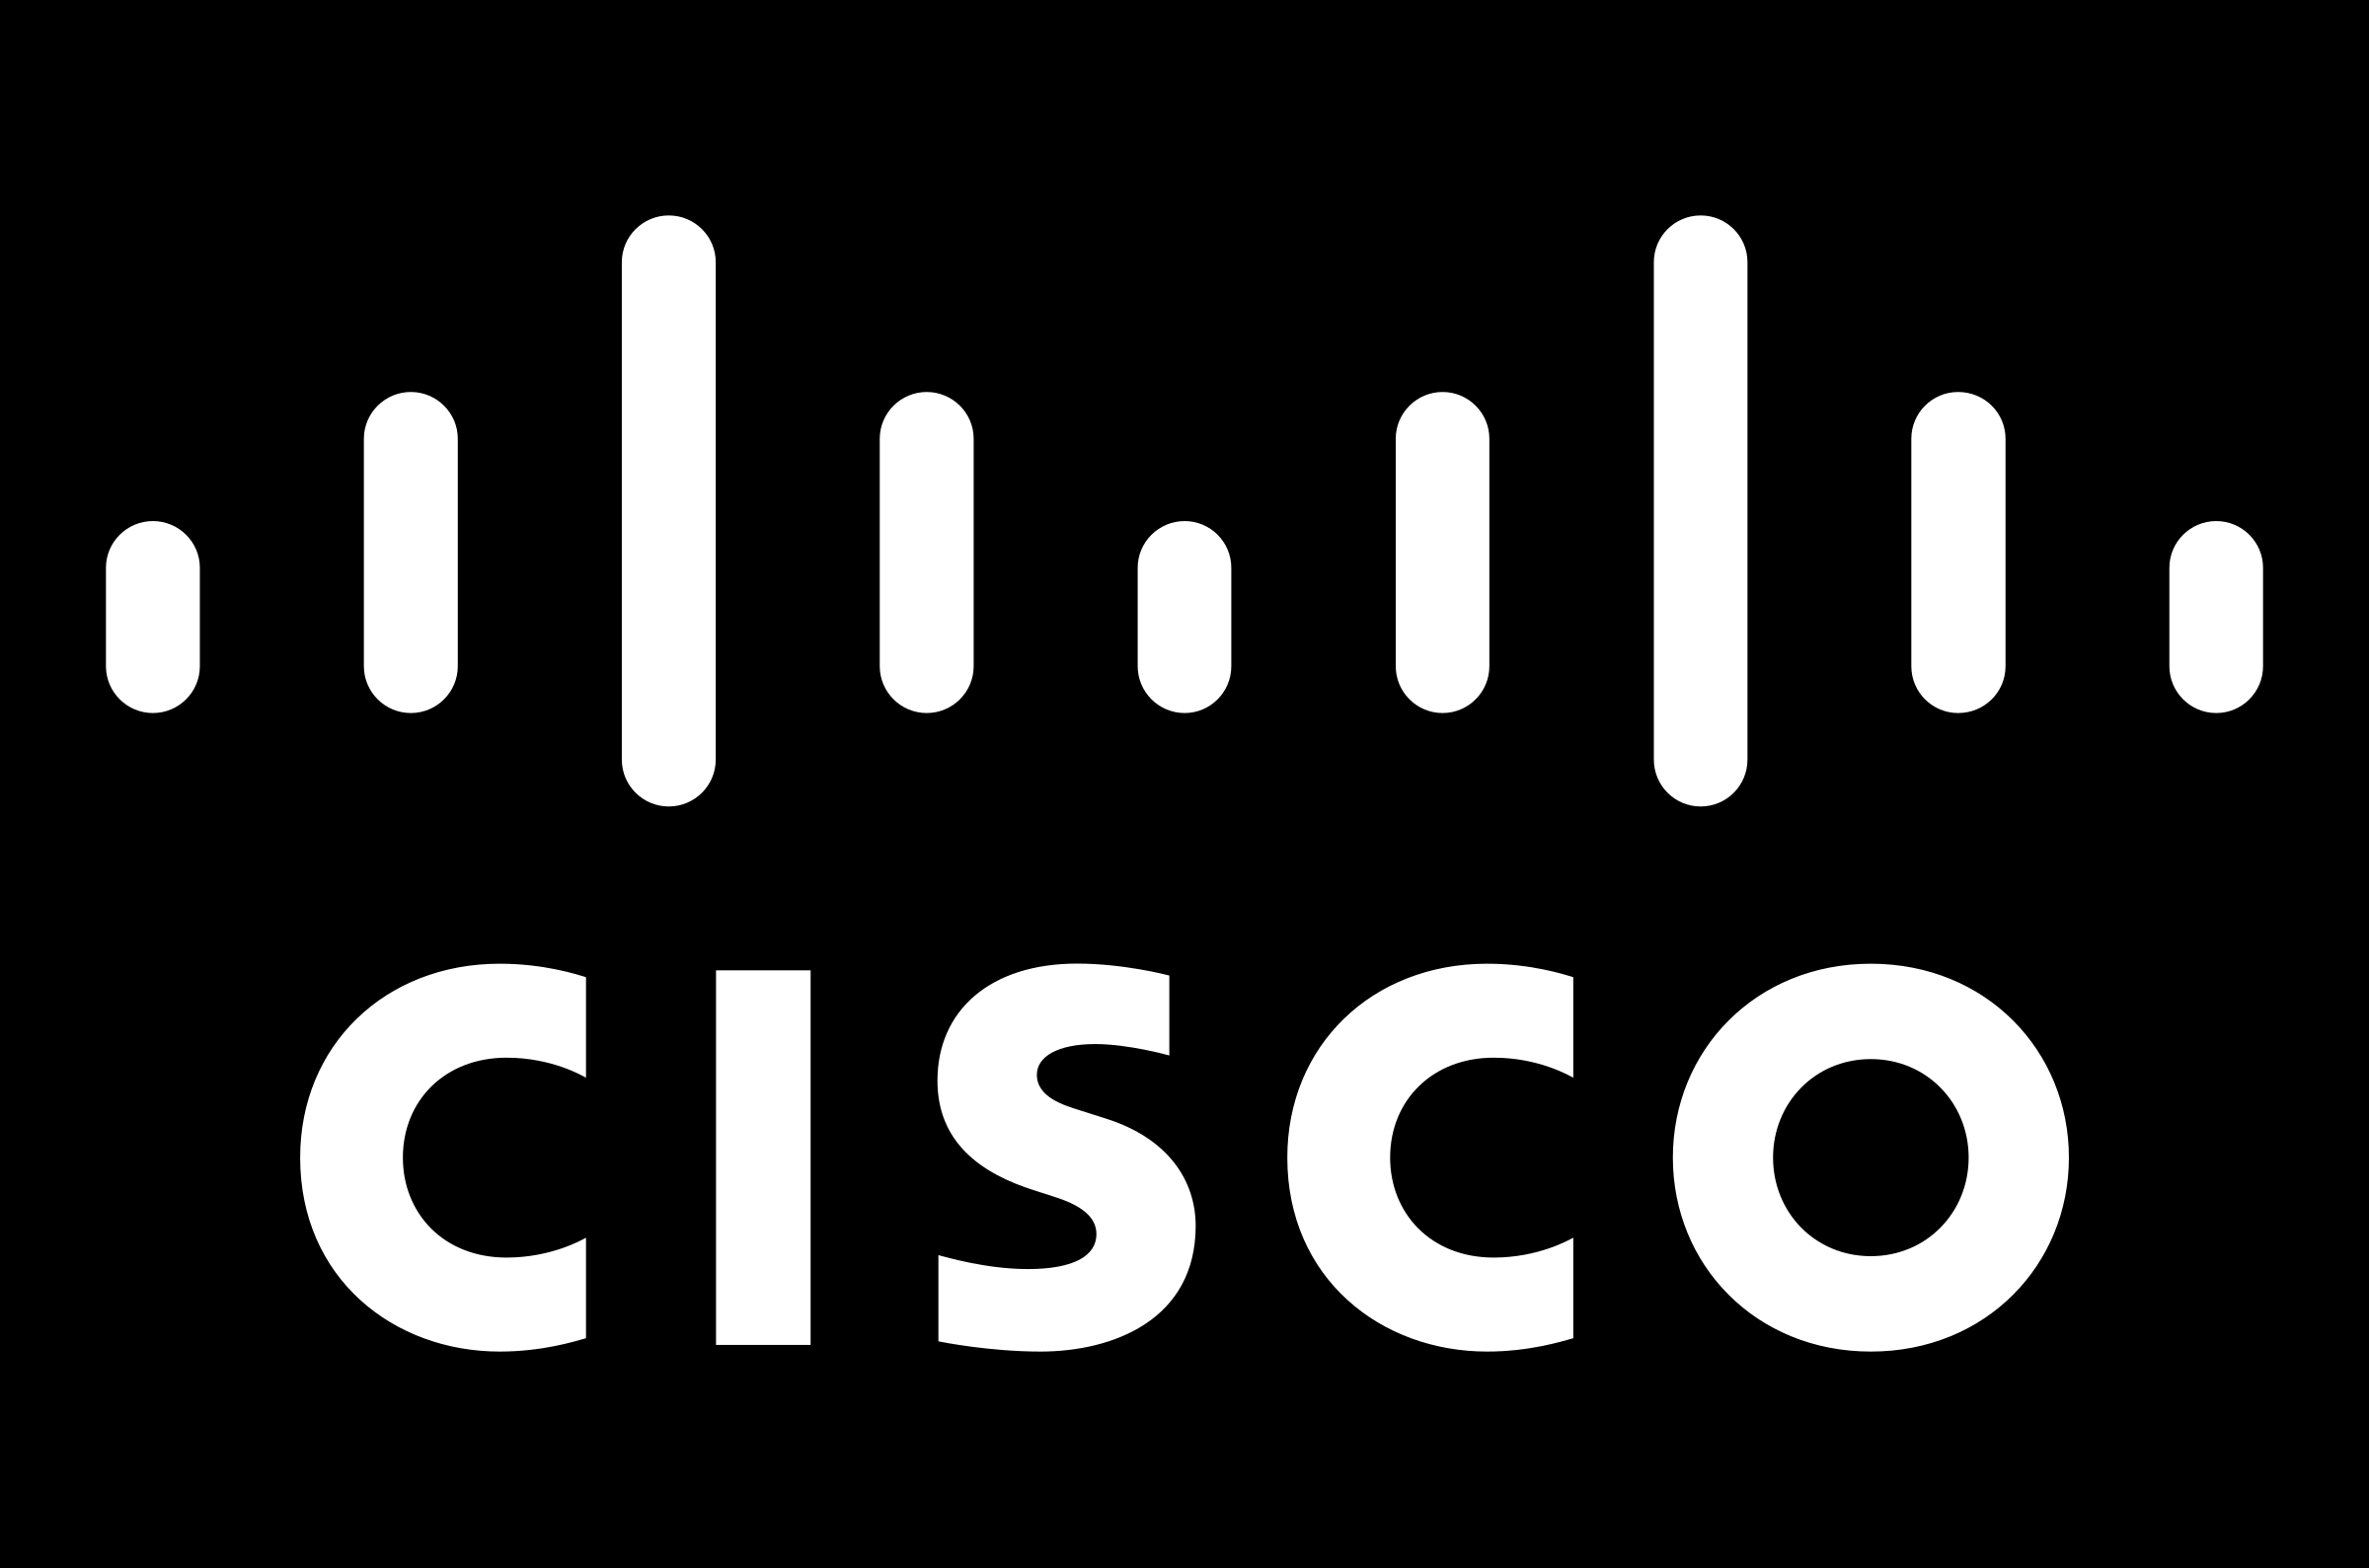 Cisco Logo PNG Transparent & SVG Vector.